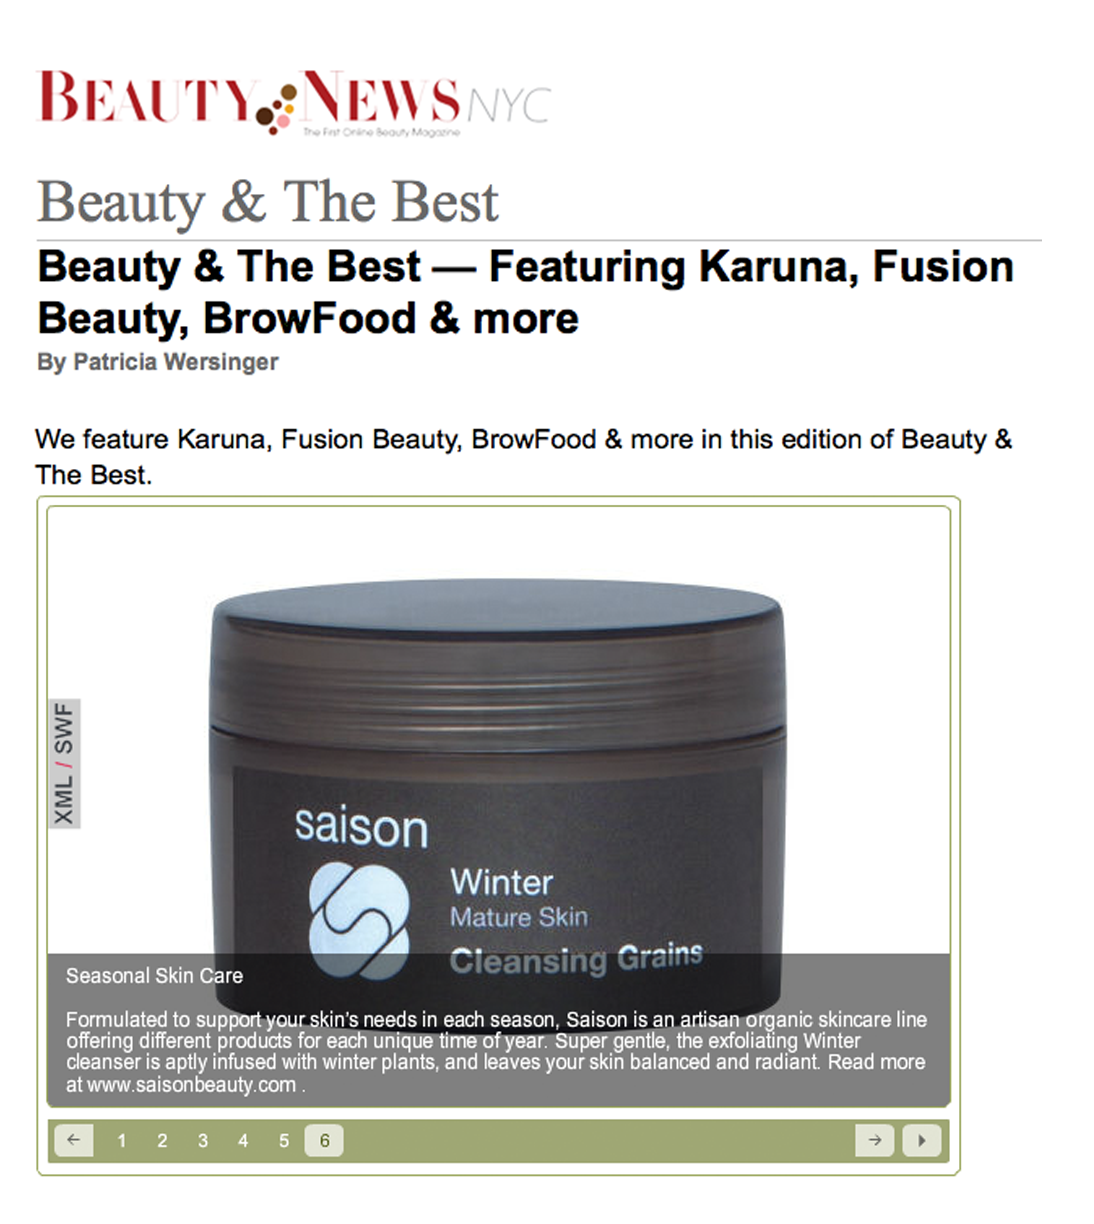 Saison In Beauty News NYC